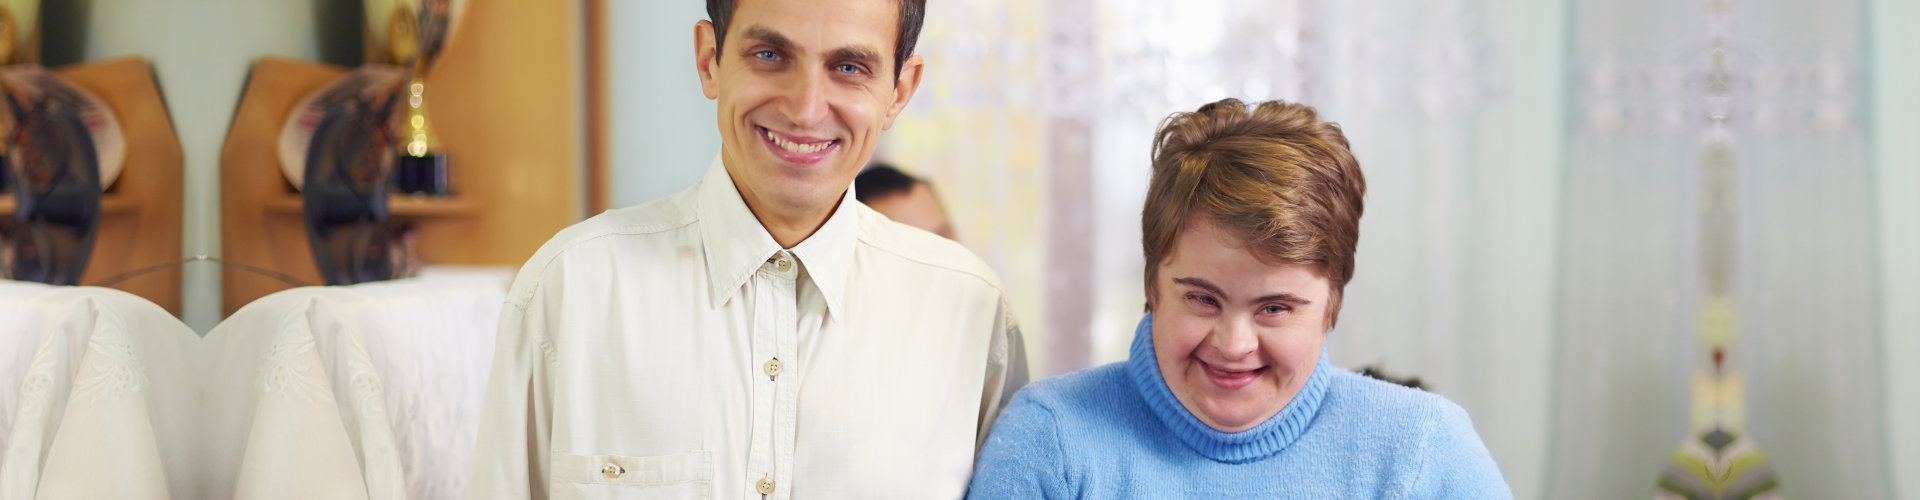 persons with disabilities smiling